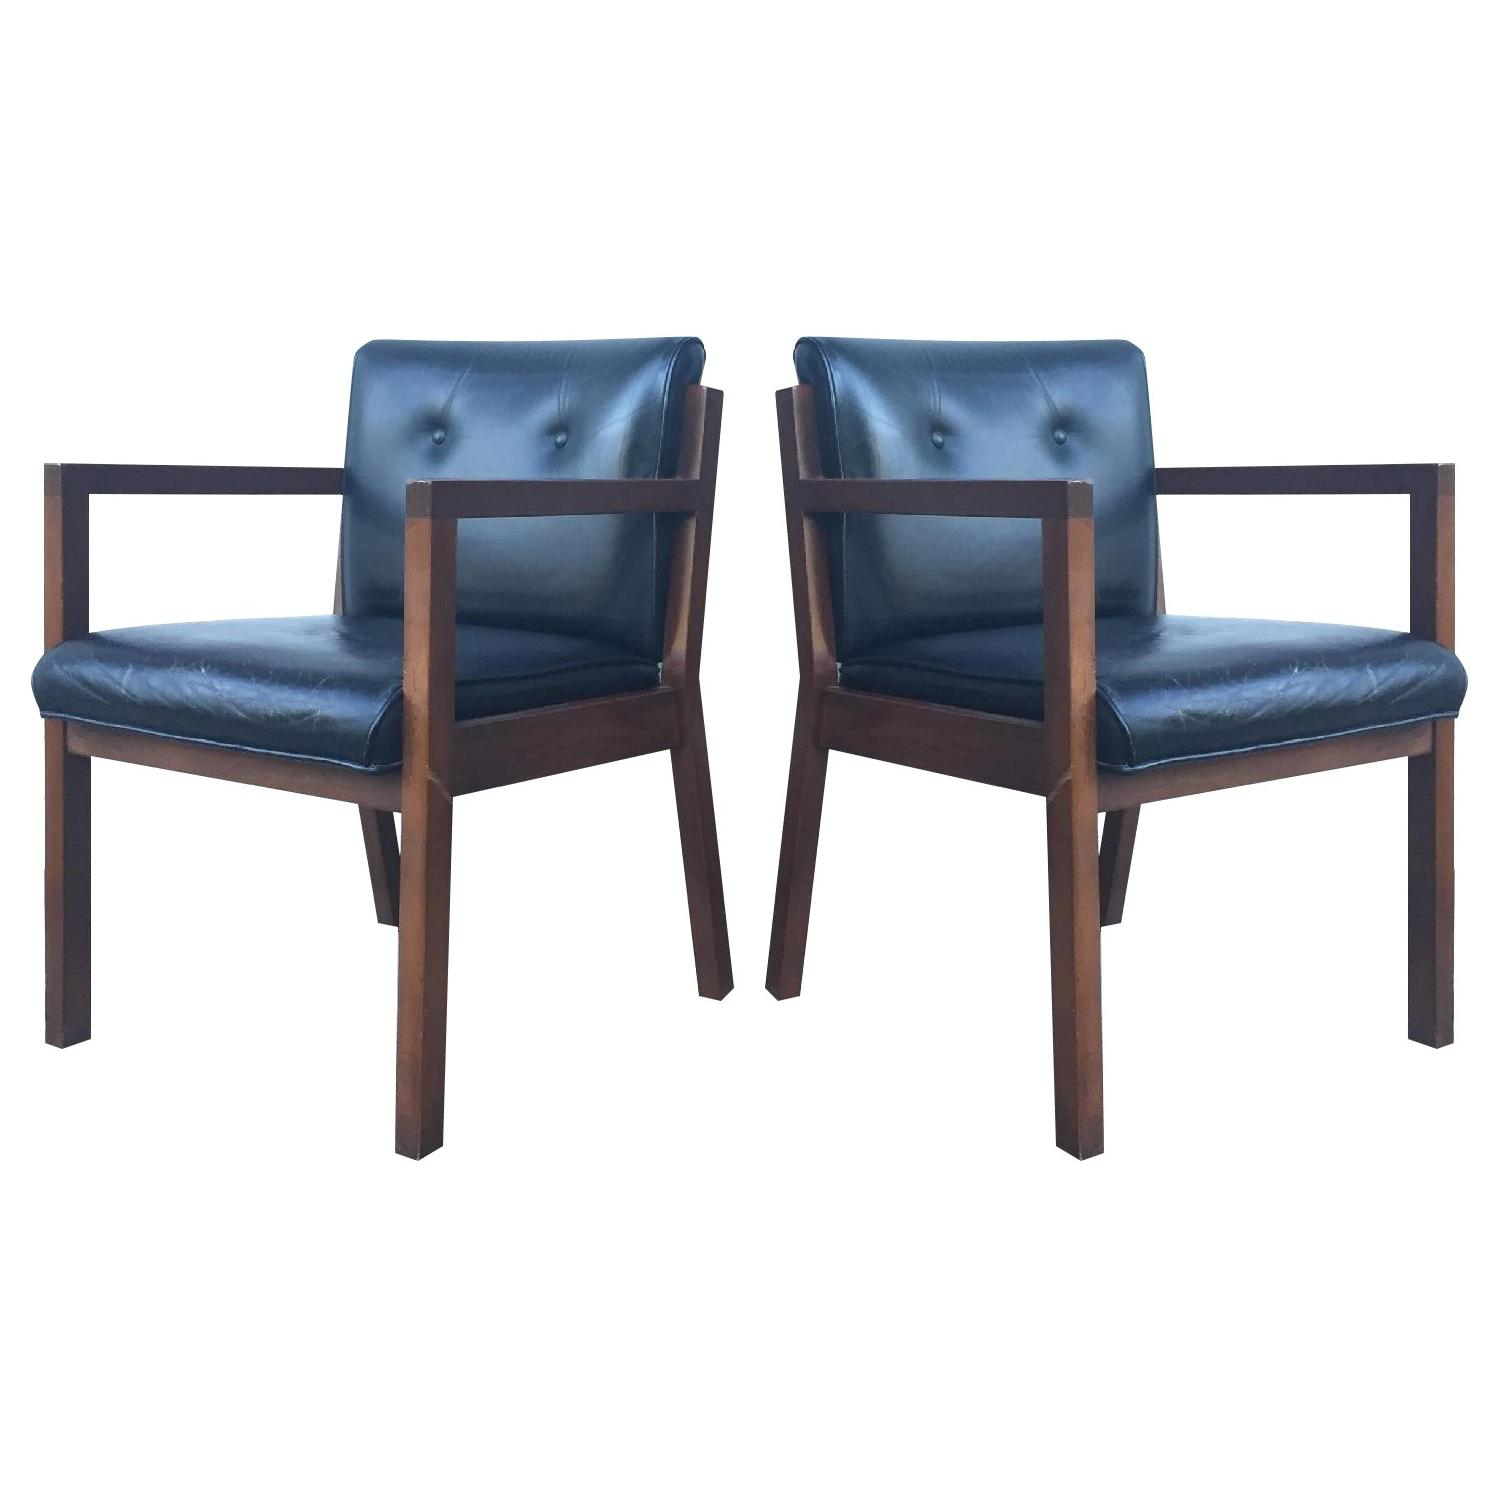 Jasper Chair Company Mid Century Modern Walnut Frame Chairs - Pair - image-0